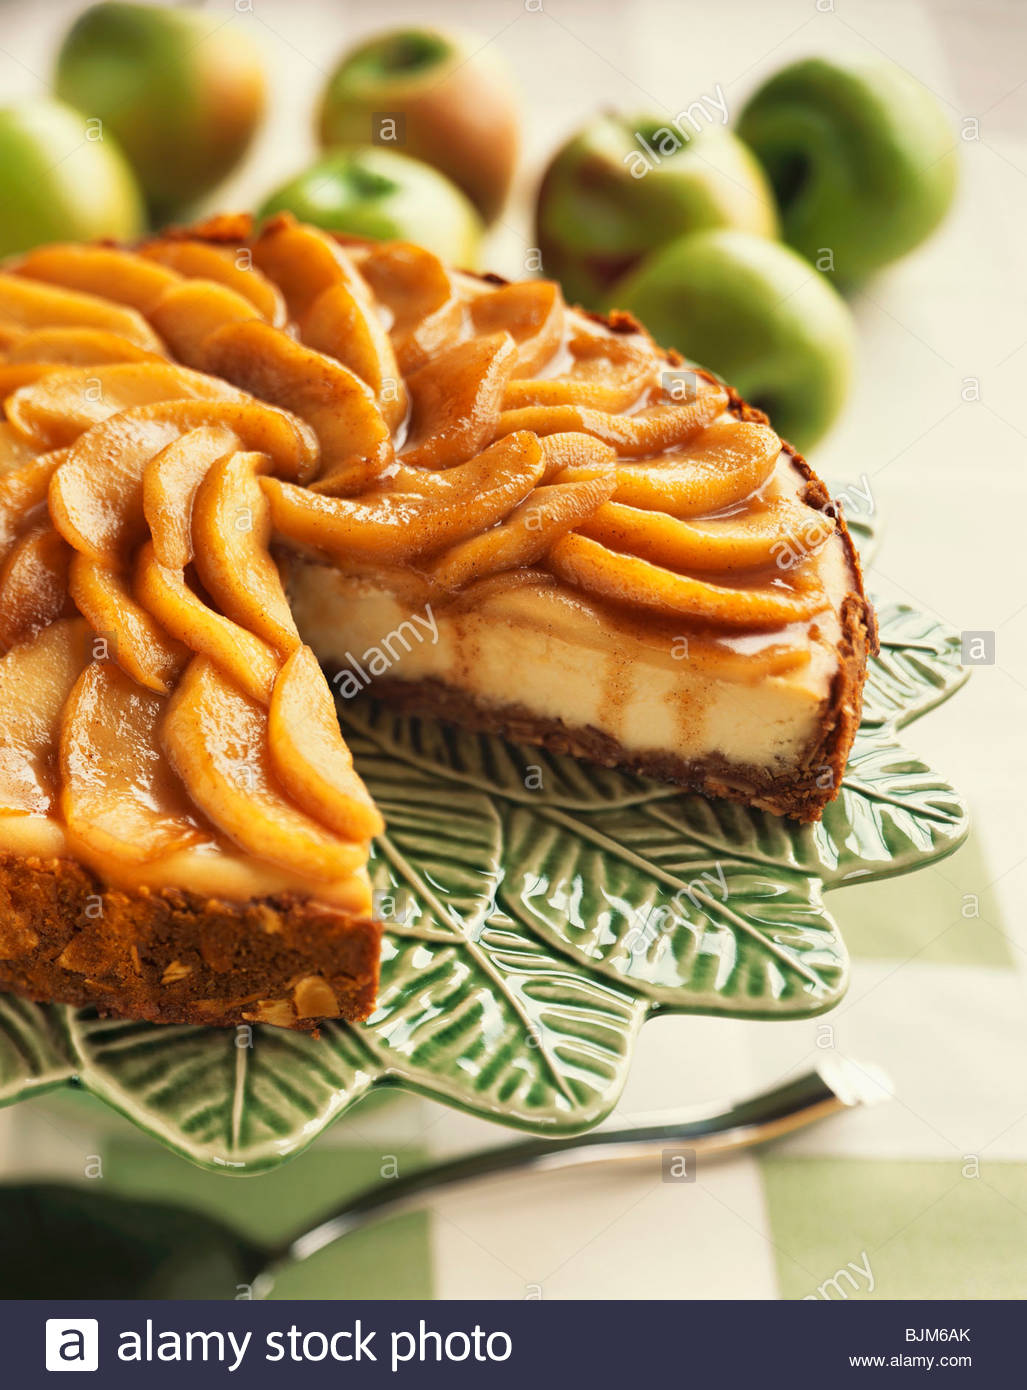 An Apple Almond Cheesecake, Slice Removed Stock Photo ...